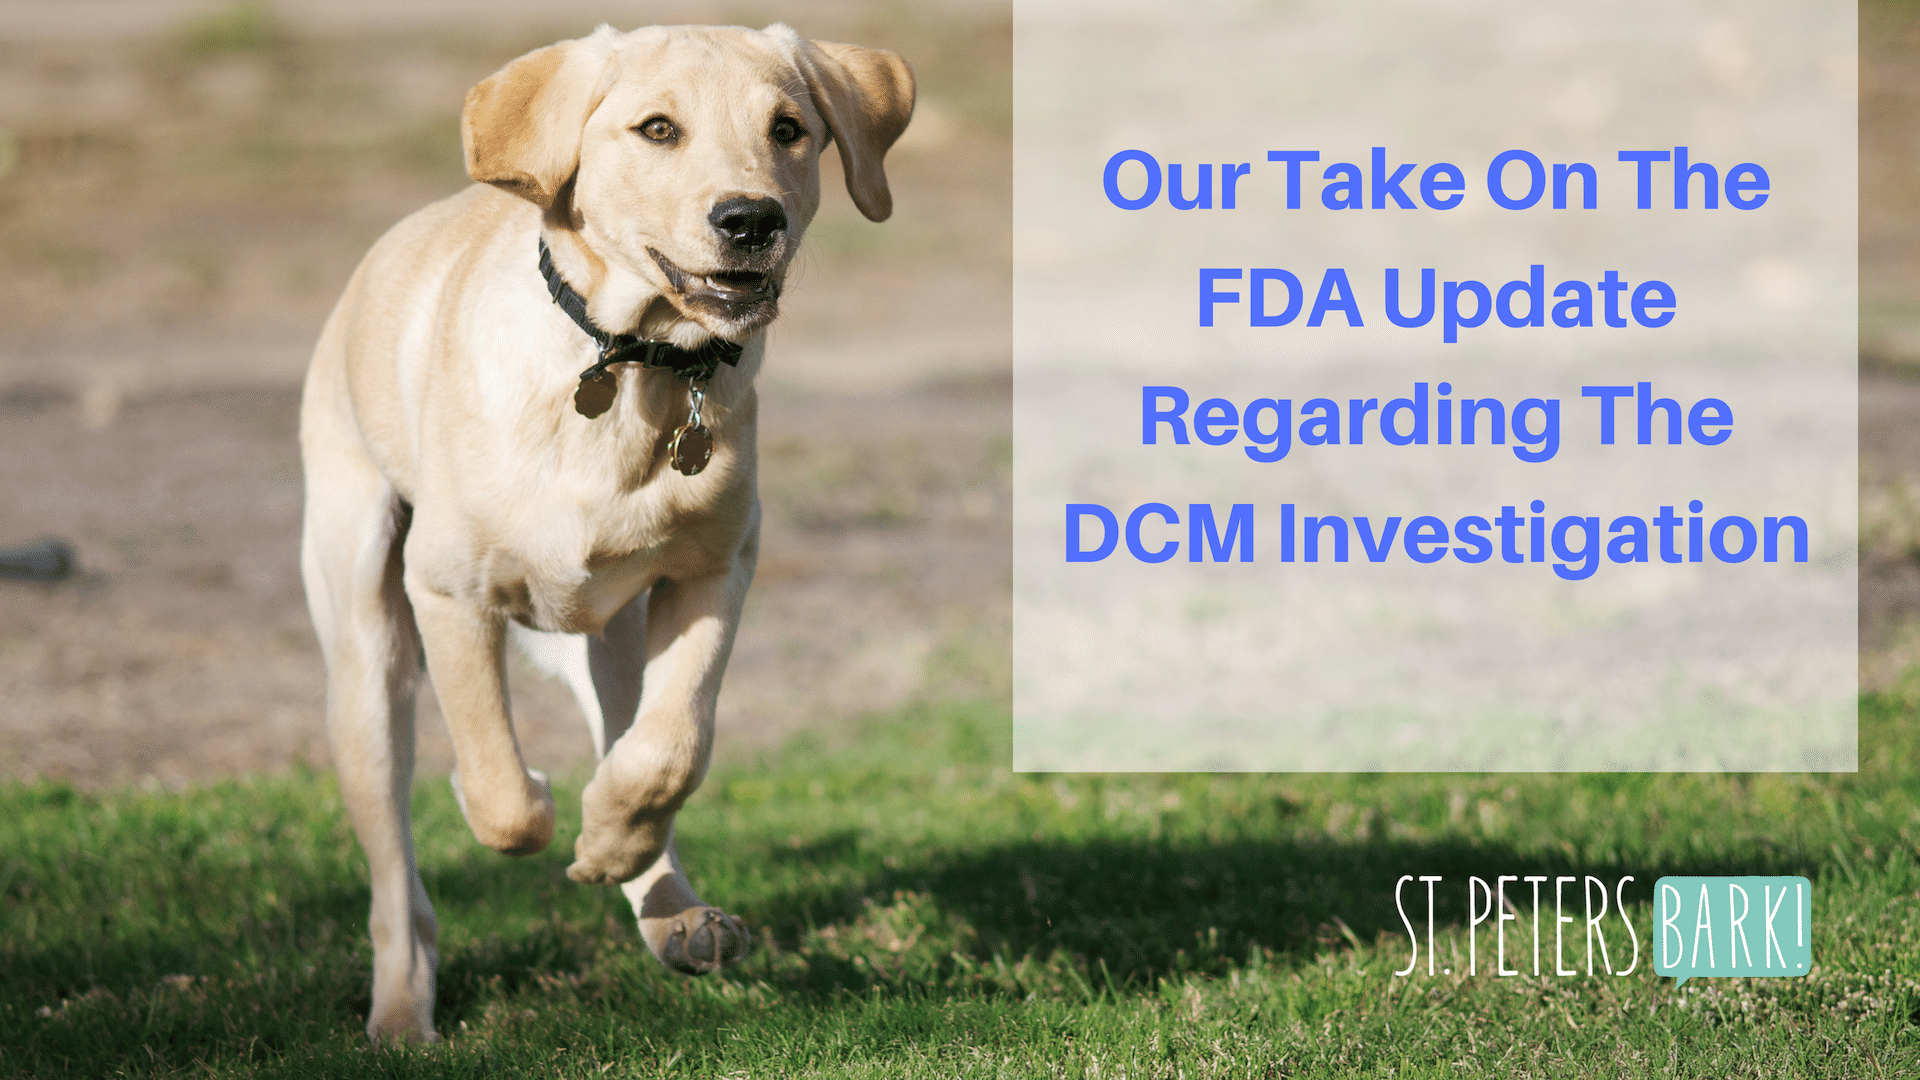 Our Take on the FDA Update regarding the DCM Investigation